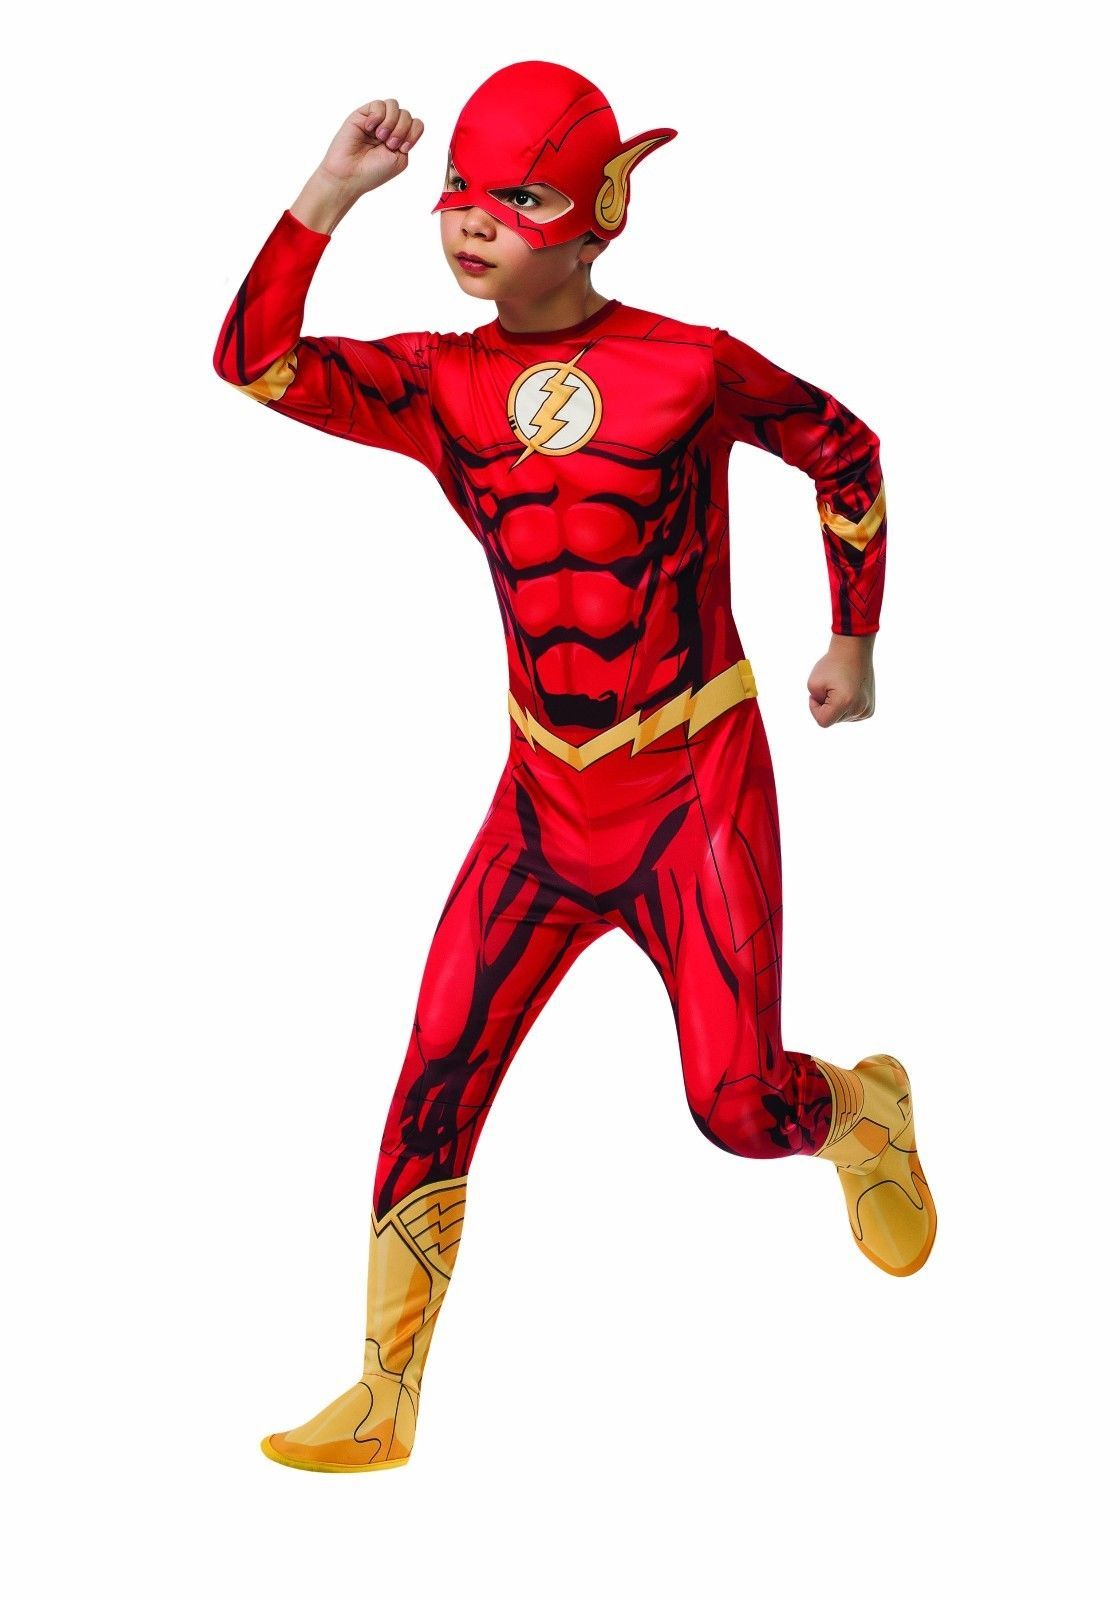 Primary image for Rubies The Flash DC Comics Superhero Childrens Boys Halloween Costume 881332